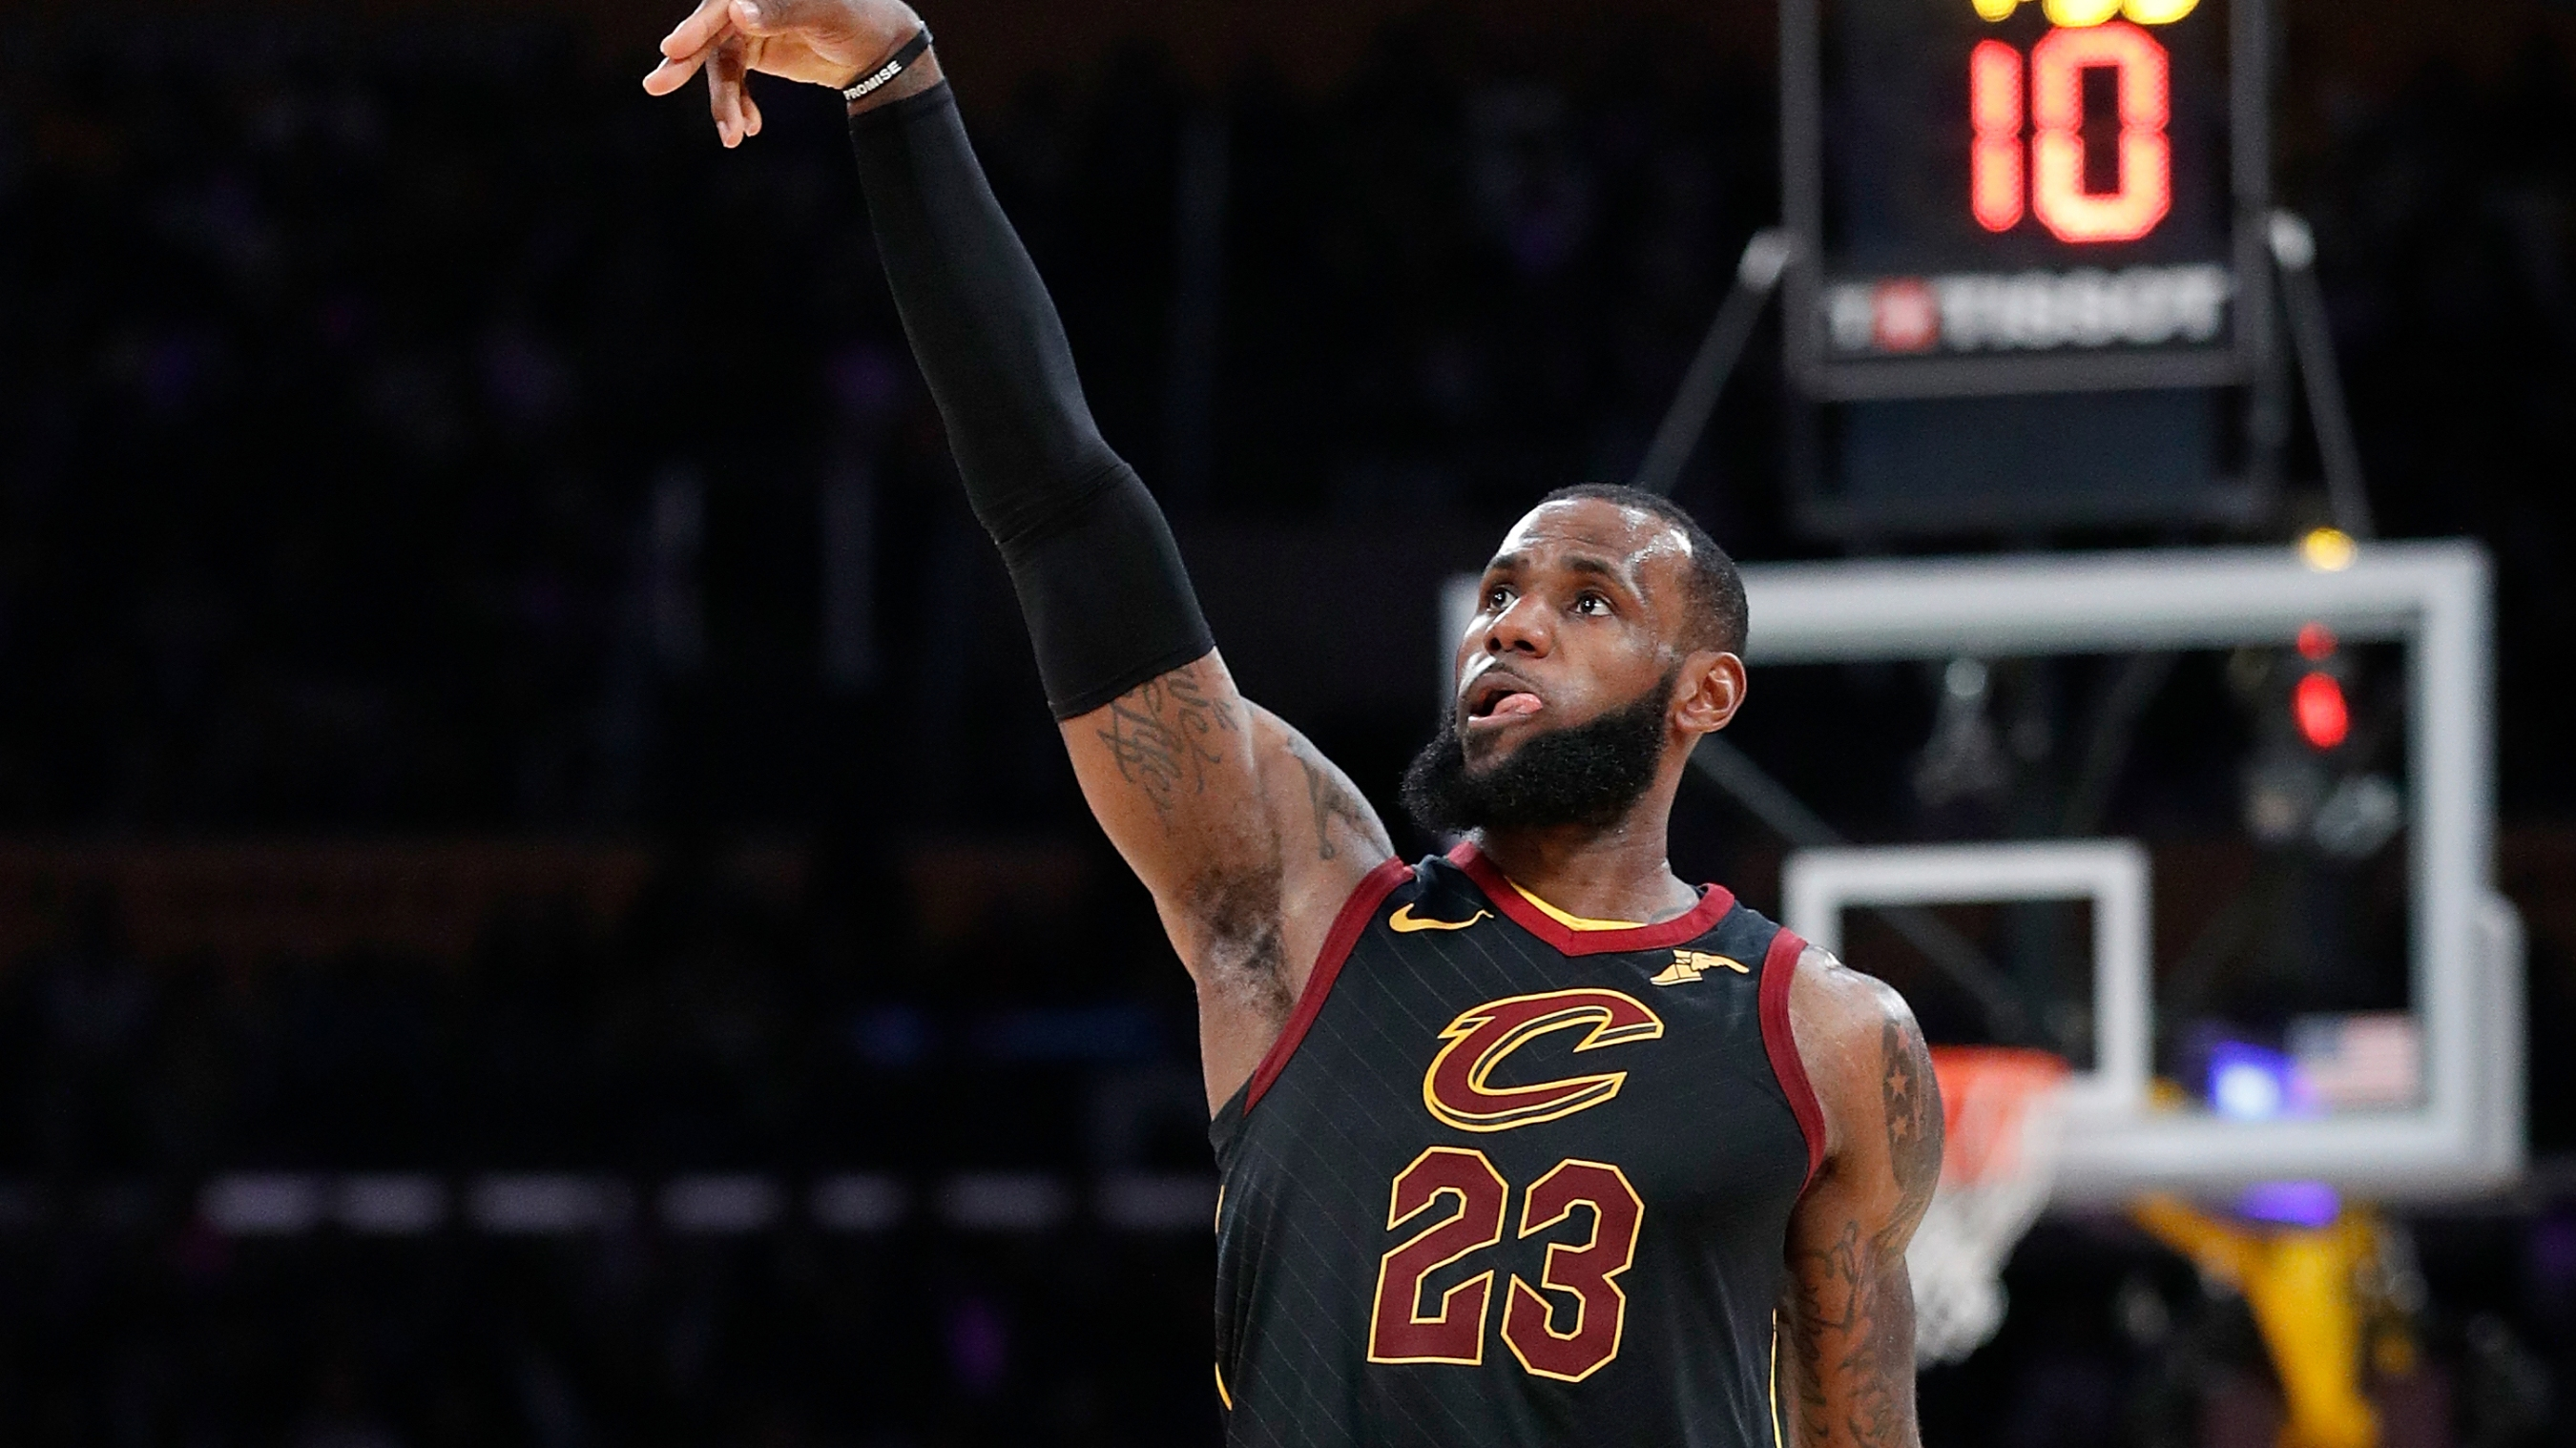 1f68c7dfc17 LeBron visits Los Angeles and courtside is as interesting to watch as the  game itself